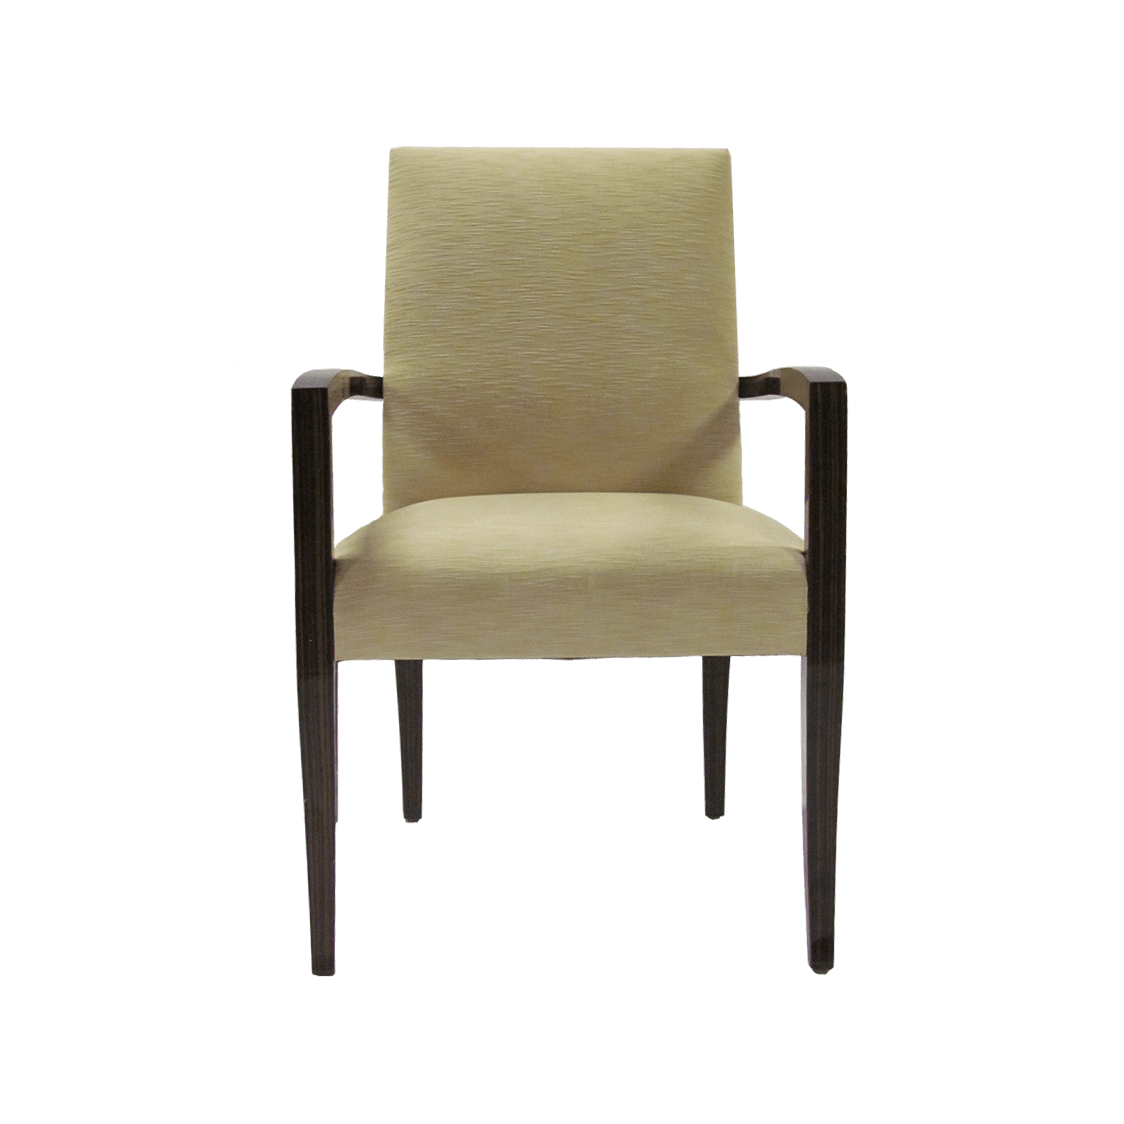 Artisitc_Frame_Arm_Chair